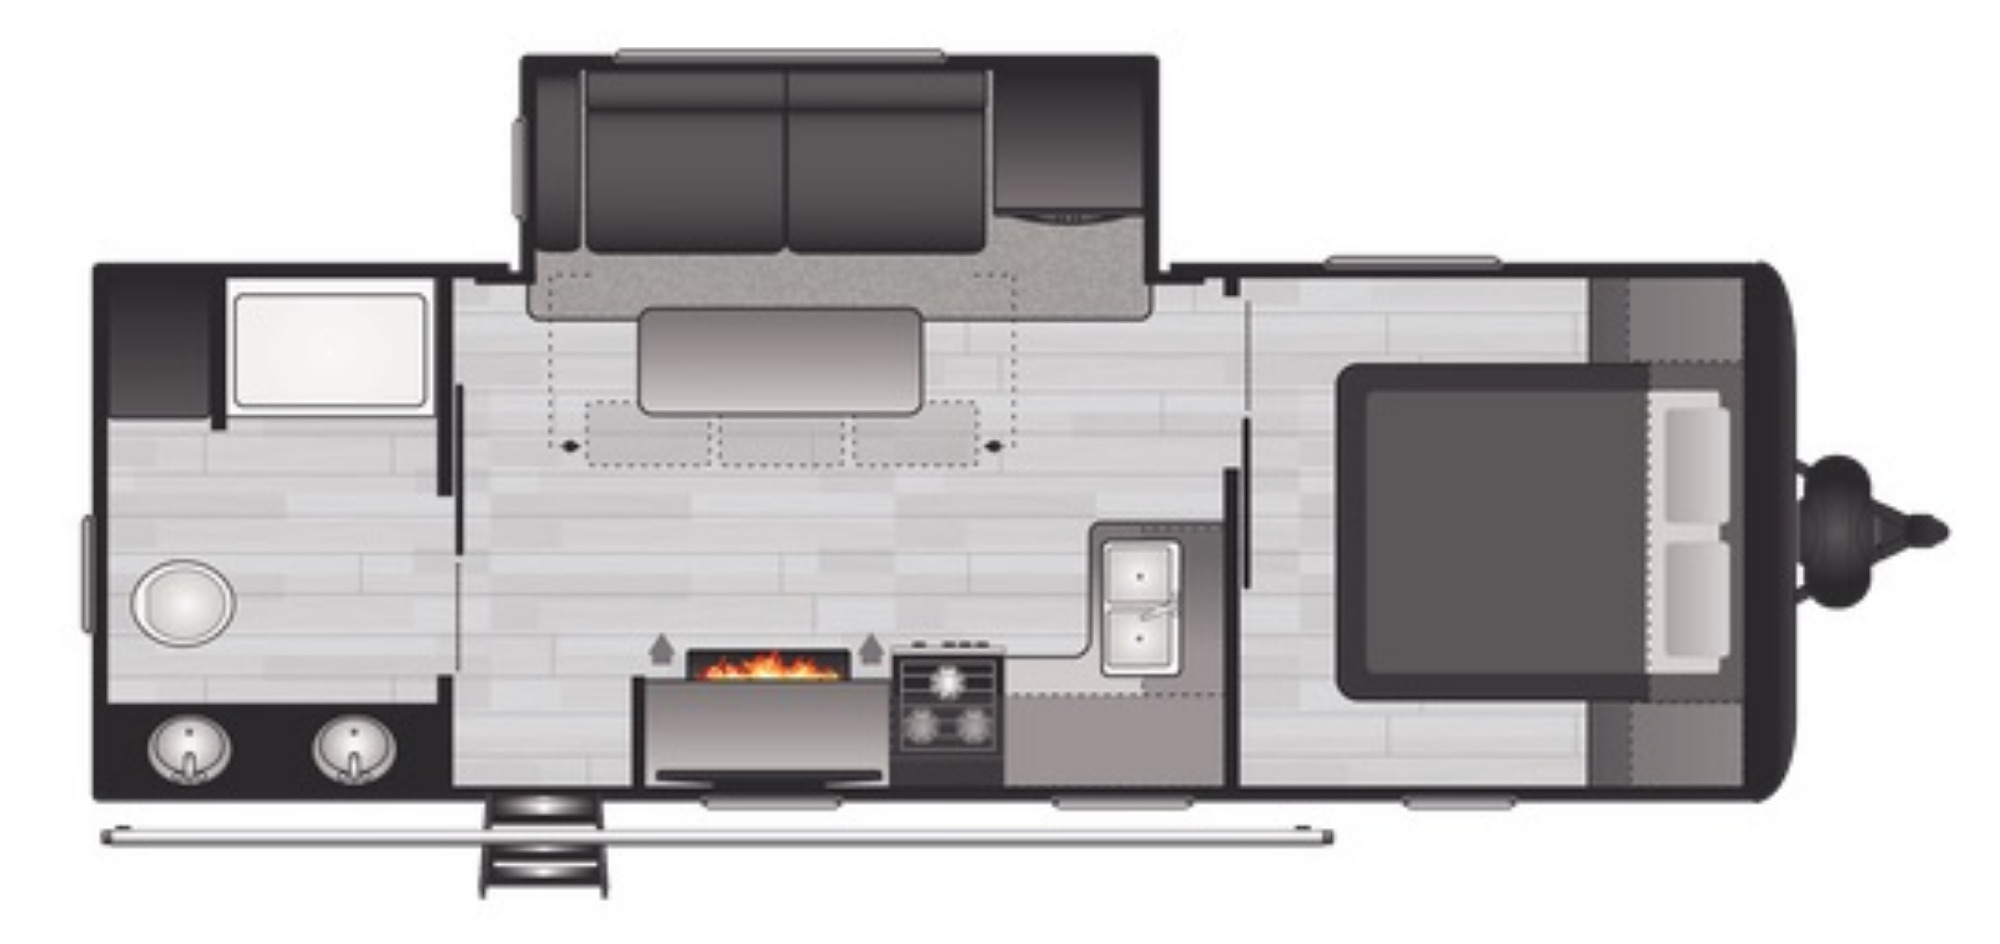 View Floor Plan for 2021 KEYSTONE HIDEOUT 243RB